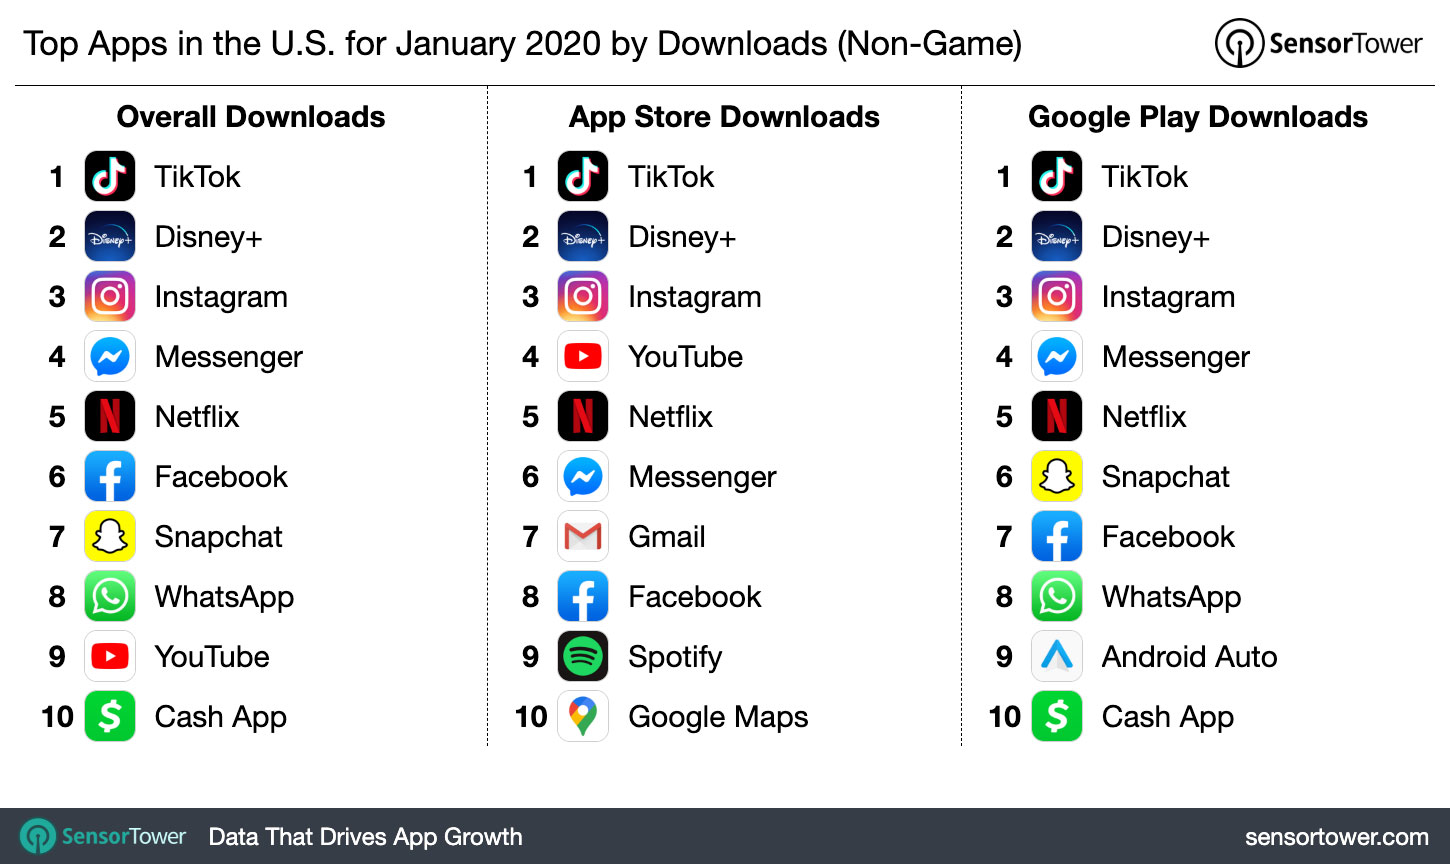 TikTok Was the Most Downloaded App in the First Month of 2020 Surpassing Whatsapp